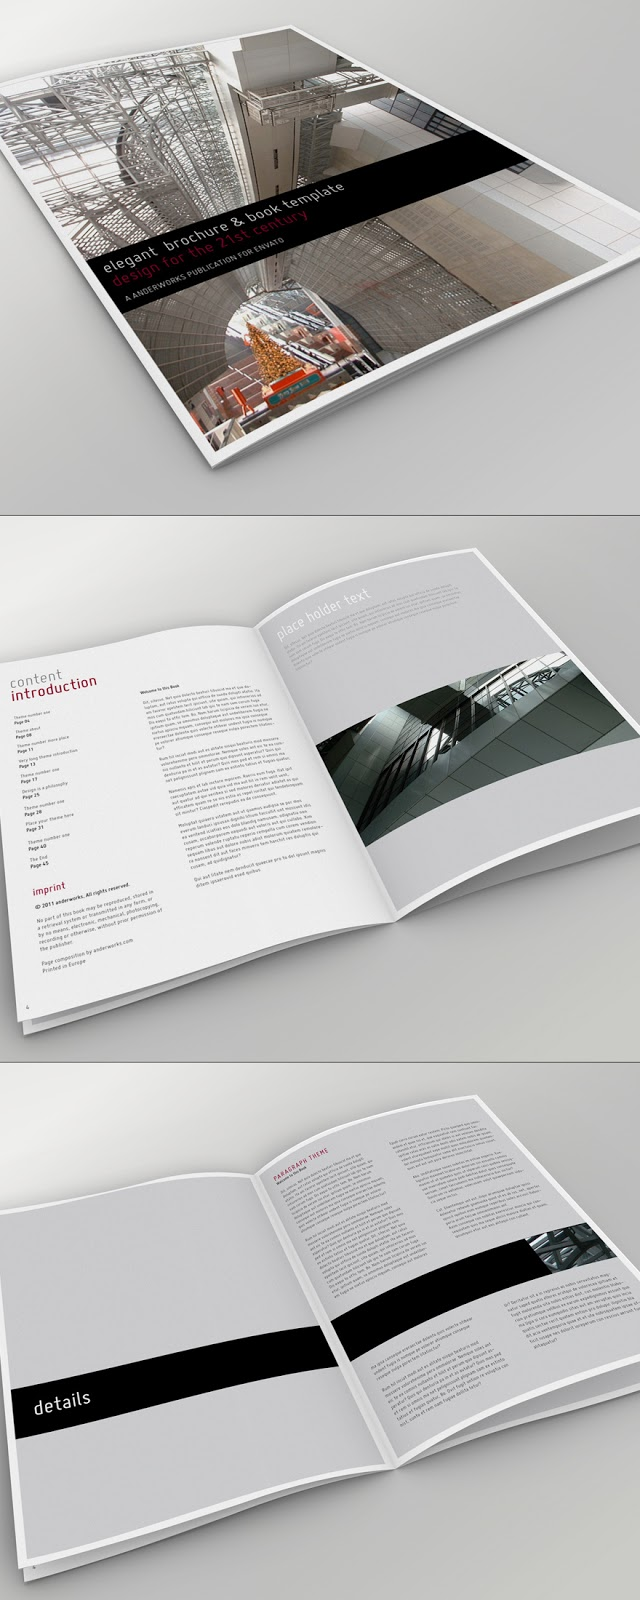 Brochure booklet templates brochure designs pics for Booklet brochure template